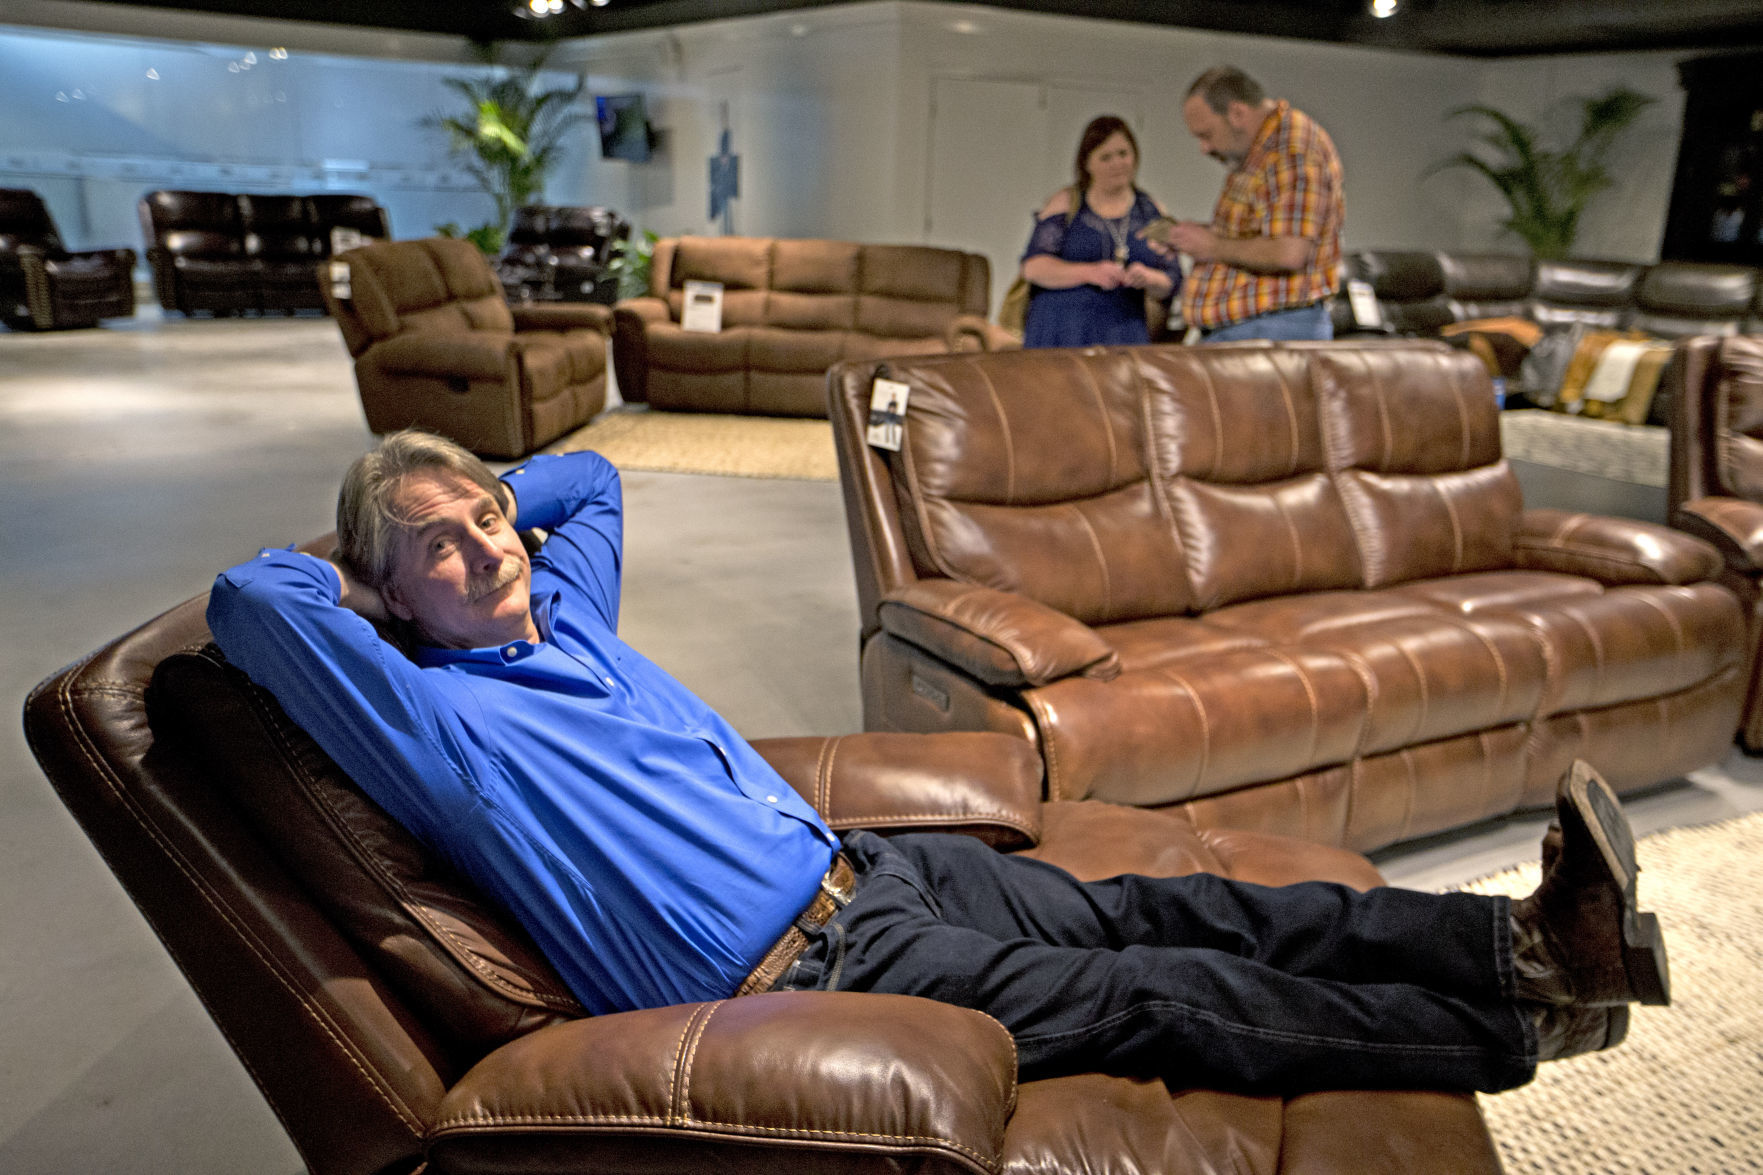 Sofa Repair Charlotte Nc No Joke Comedian Jeff Foxworthy Has His Own Line Of Recliners